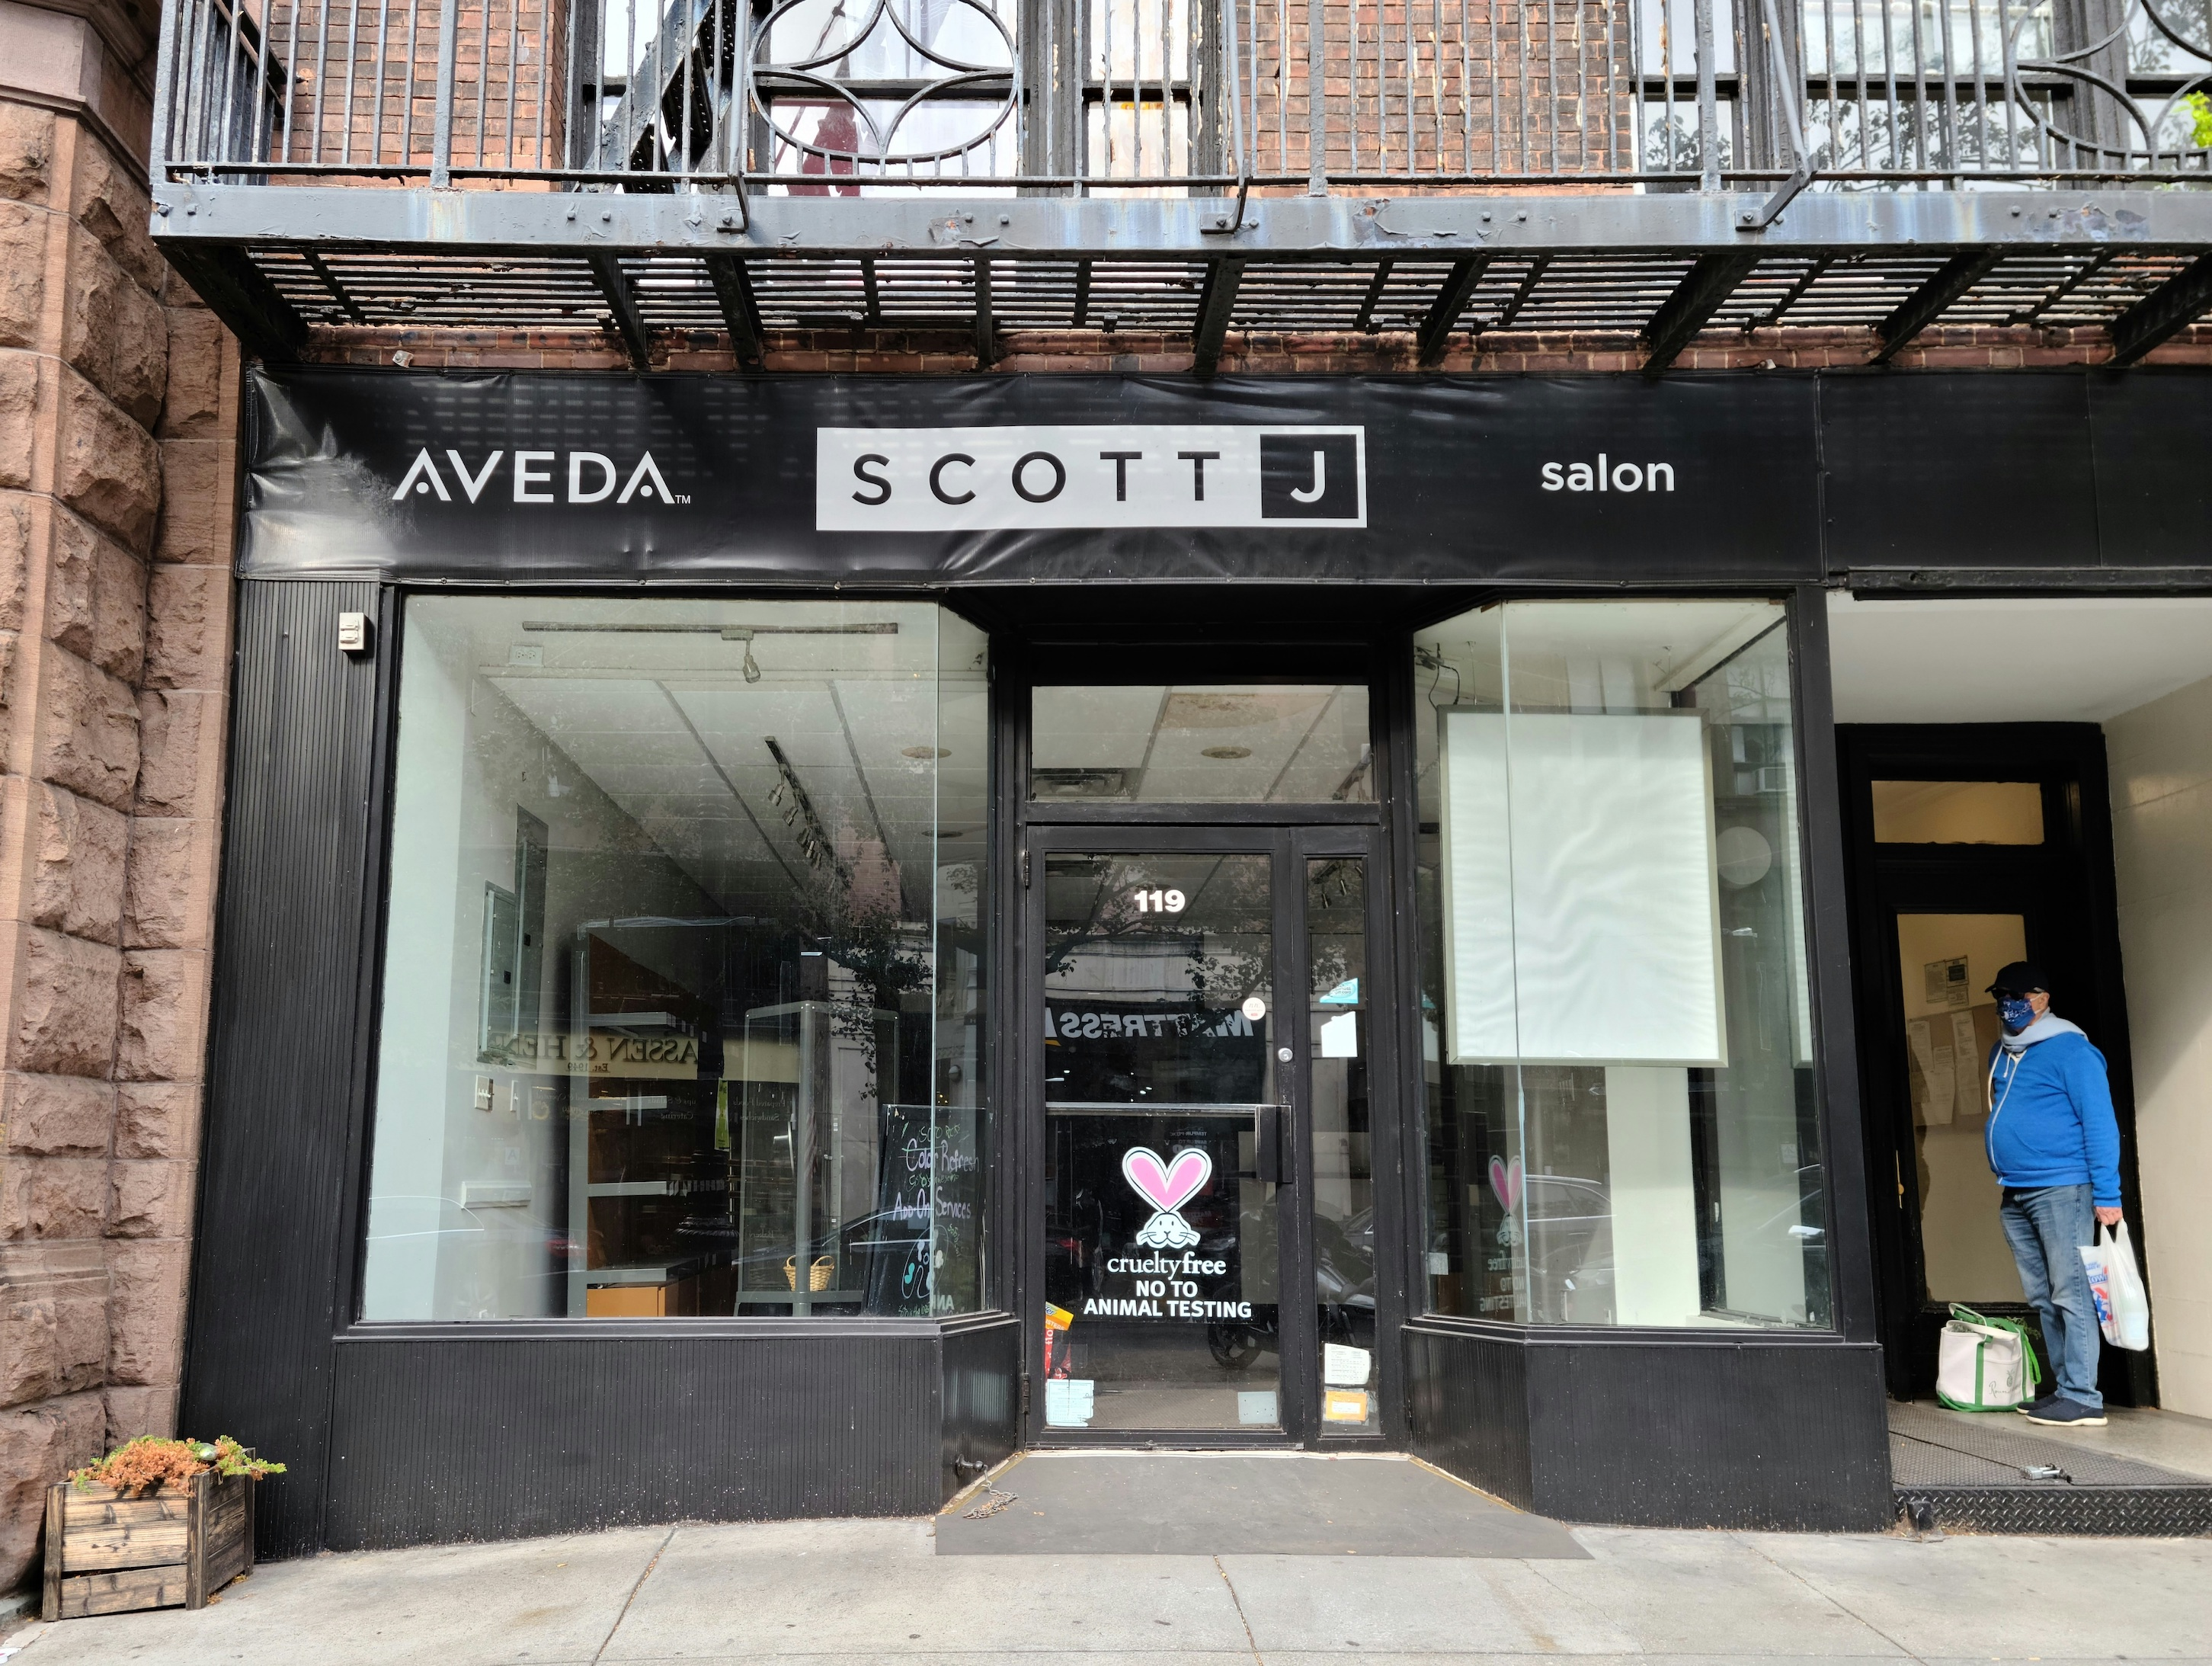 Scott J Aveda Salon (119 Montague St.)